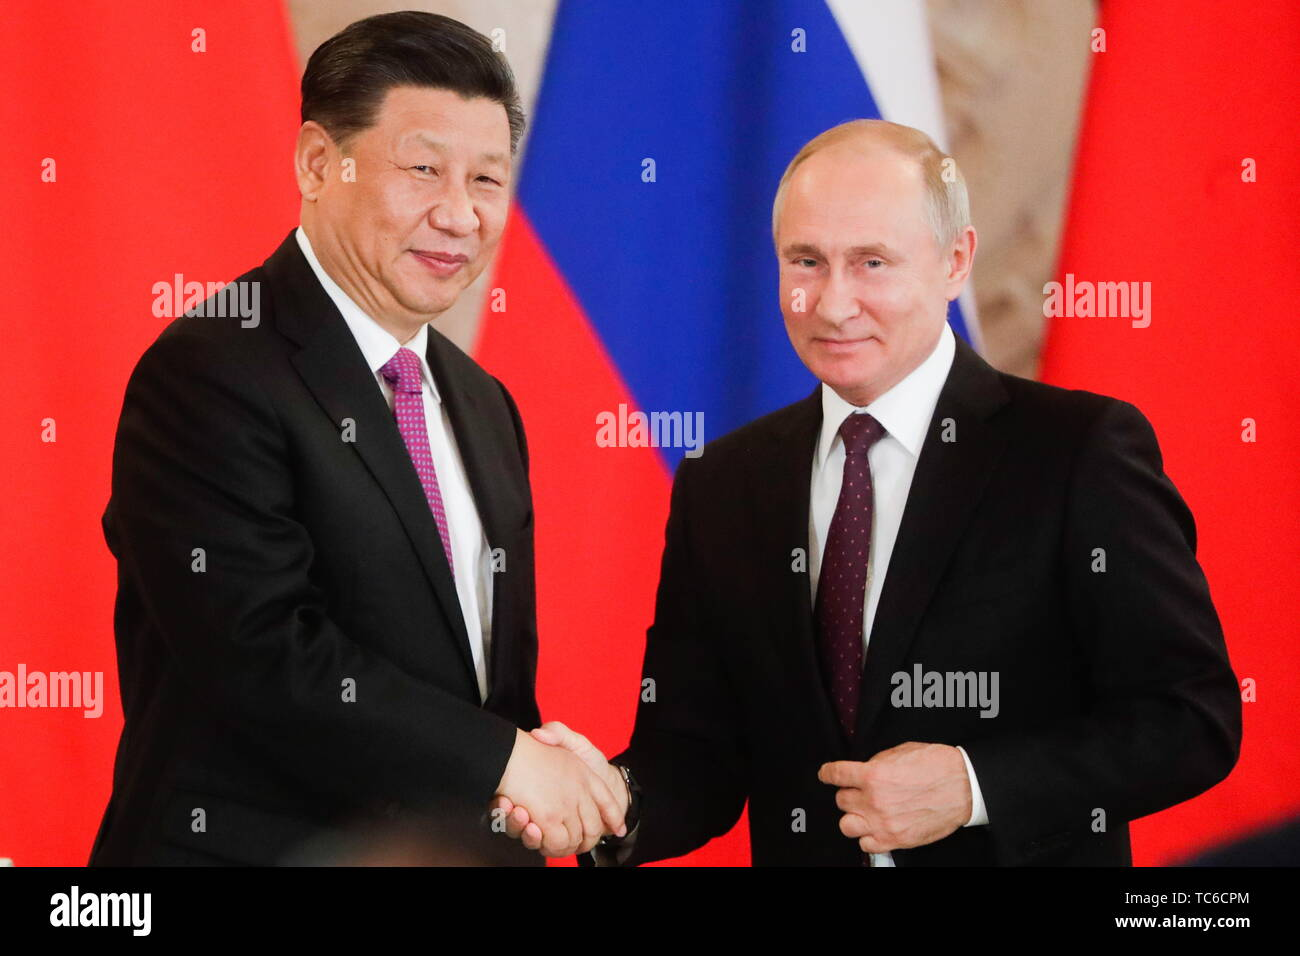 Moscow, Russia. 05th June, 2019. MOSCOW, RUSSIA - JUNE 5, 2019: China's President Xi Jinping (L) and Russia's President Vladimir Putin shake hands at a ceremony to sign joint documents following Russian-Chinese talks at the Moscow Kremlin. Mikhail Metzel/TASS Credit: ITAR-TASS News Agency/Alamy Live News - Stock Image